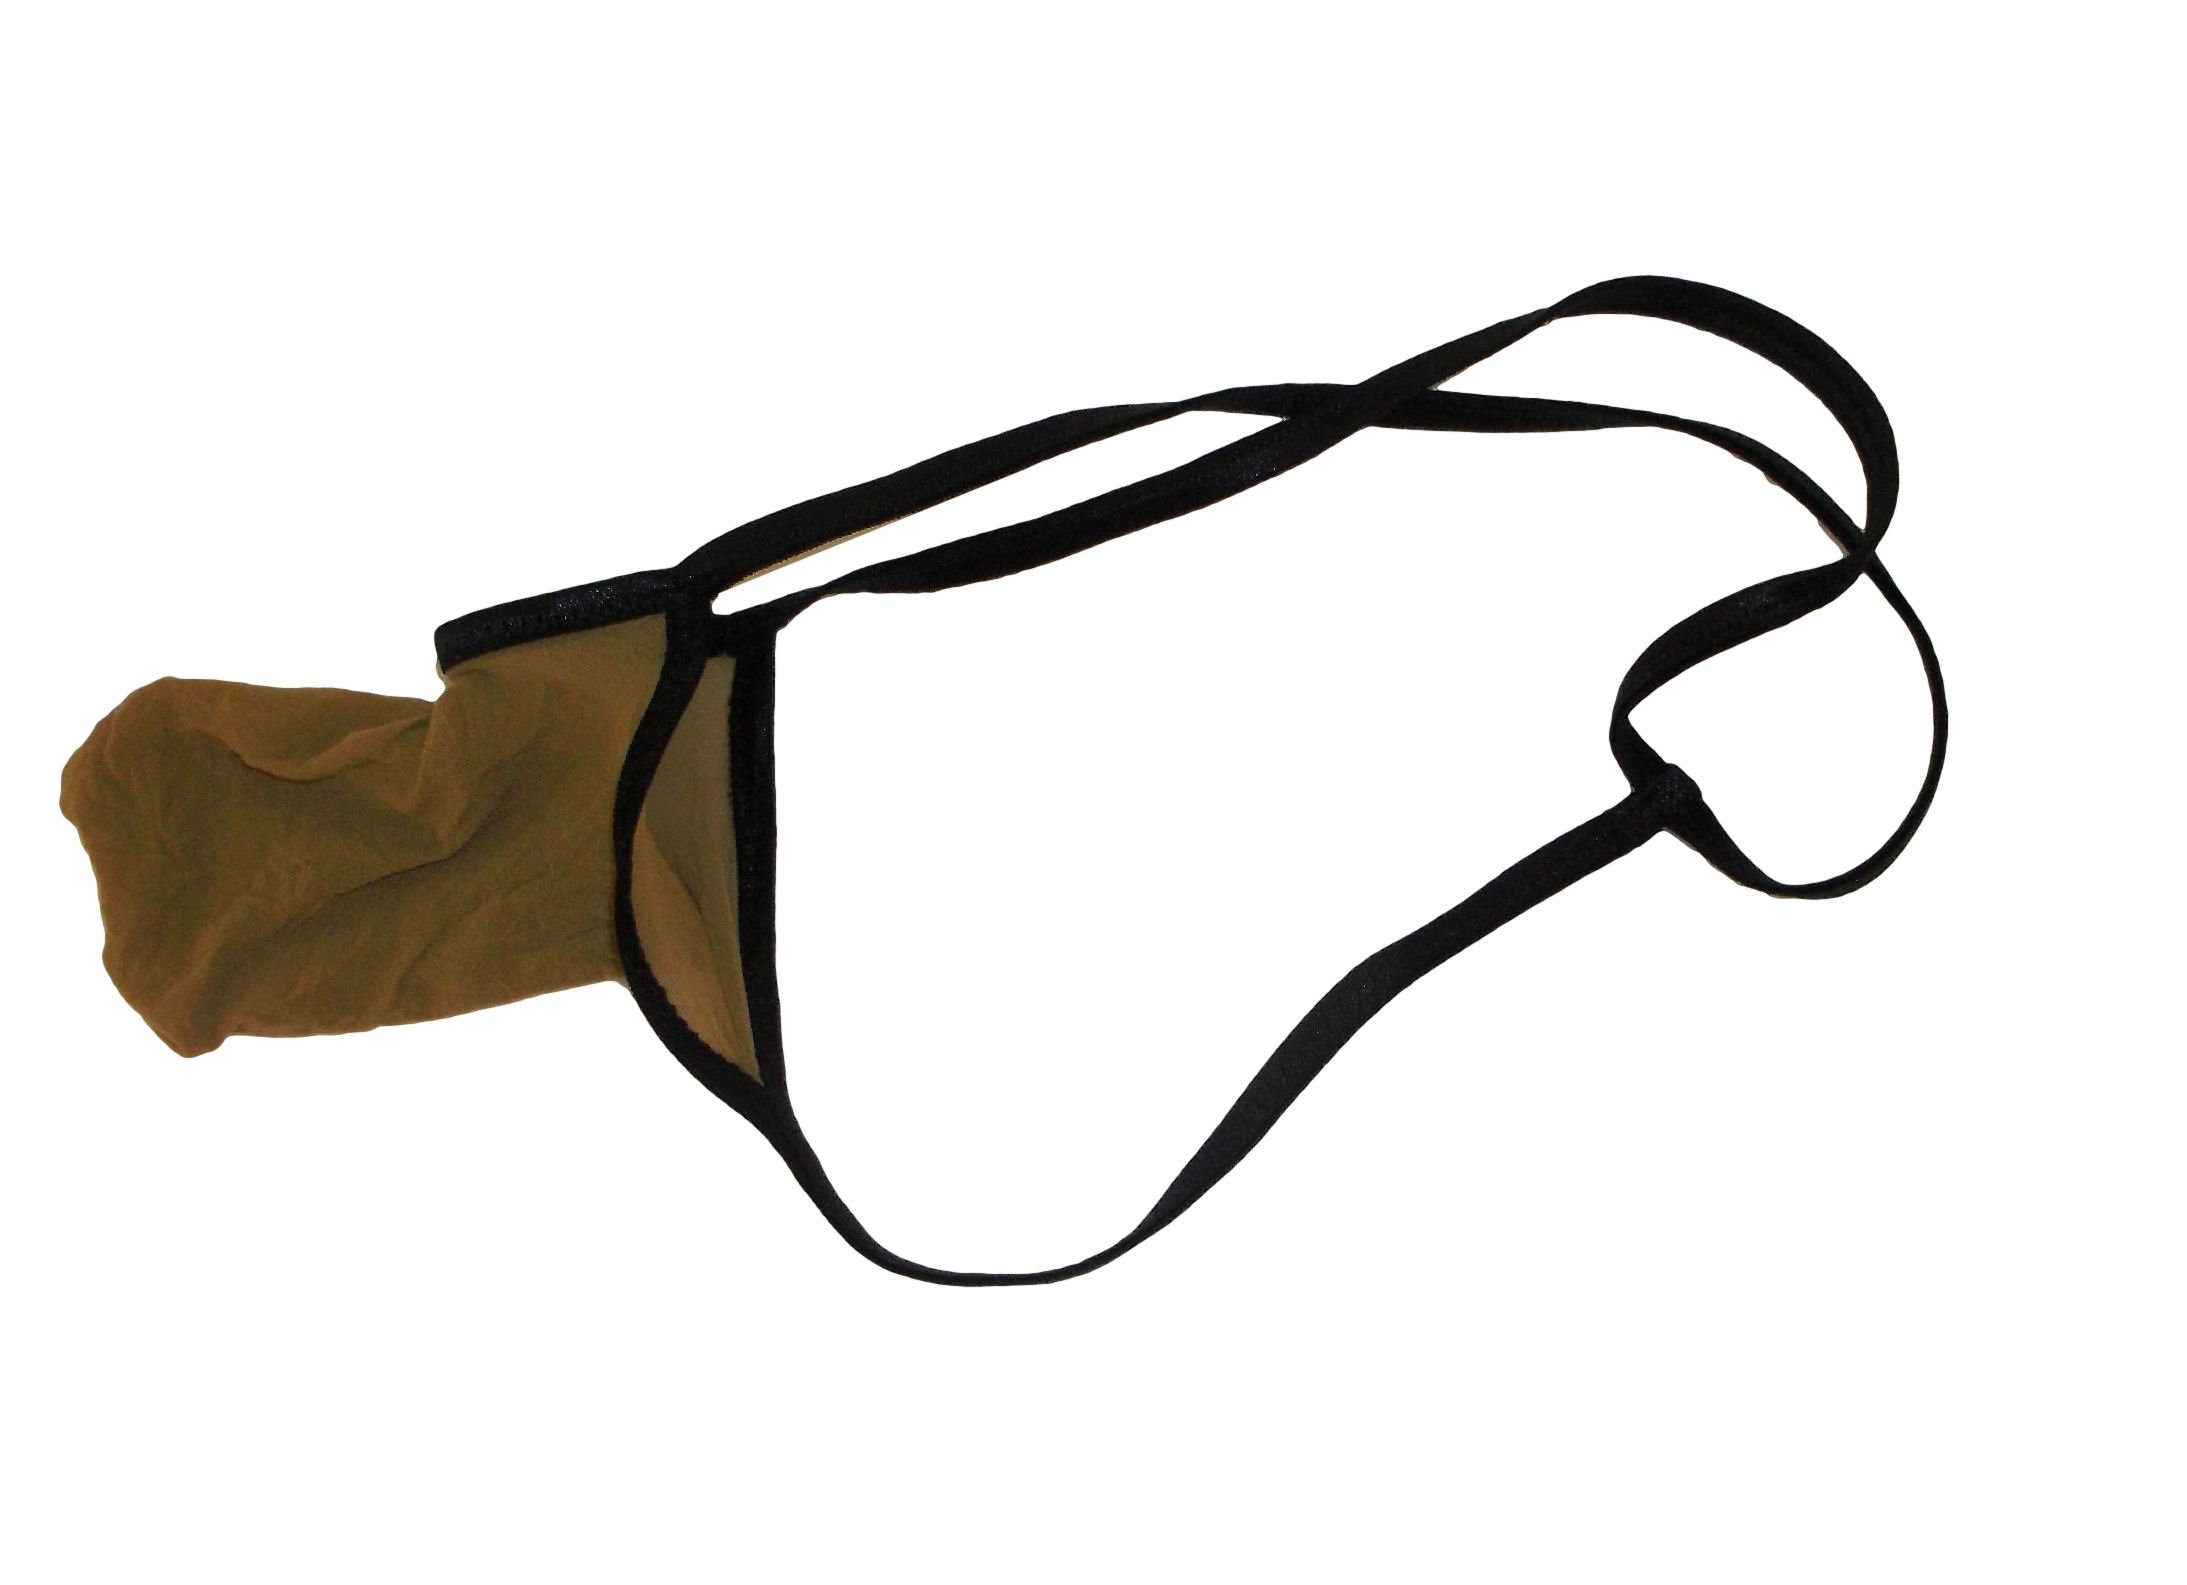 Mens G String Torpedo Missile Thong EXPANDABLE Stretchy Stocking SUN TAN Made in USA